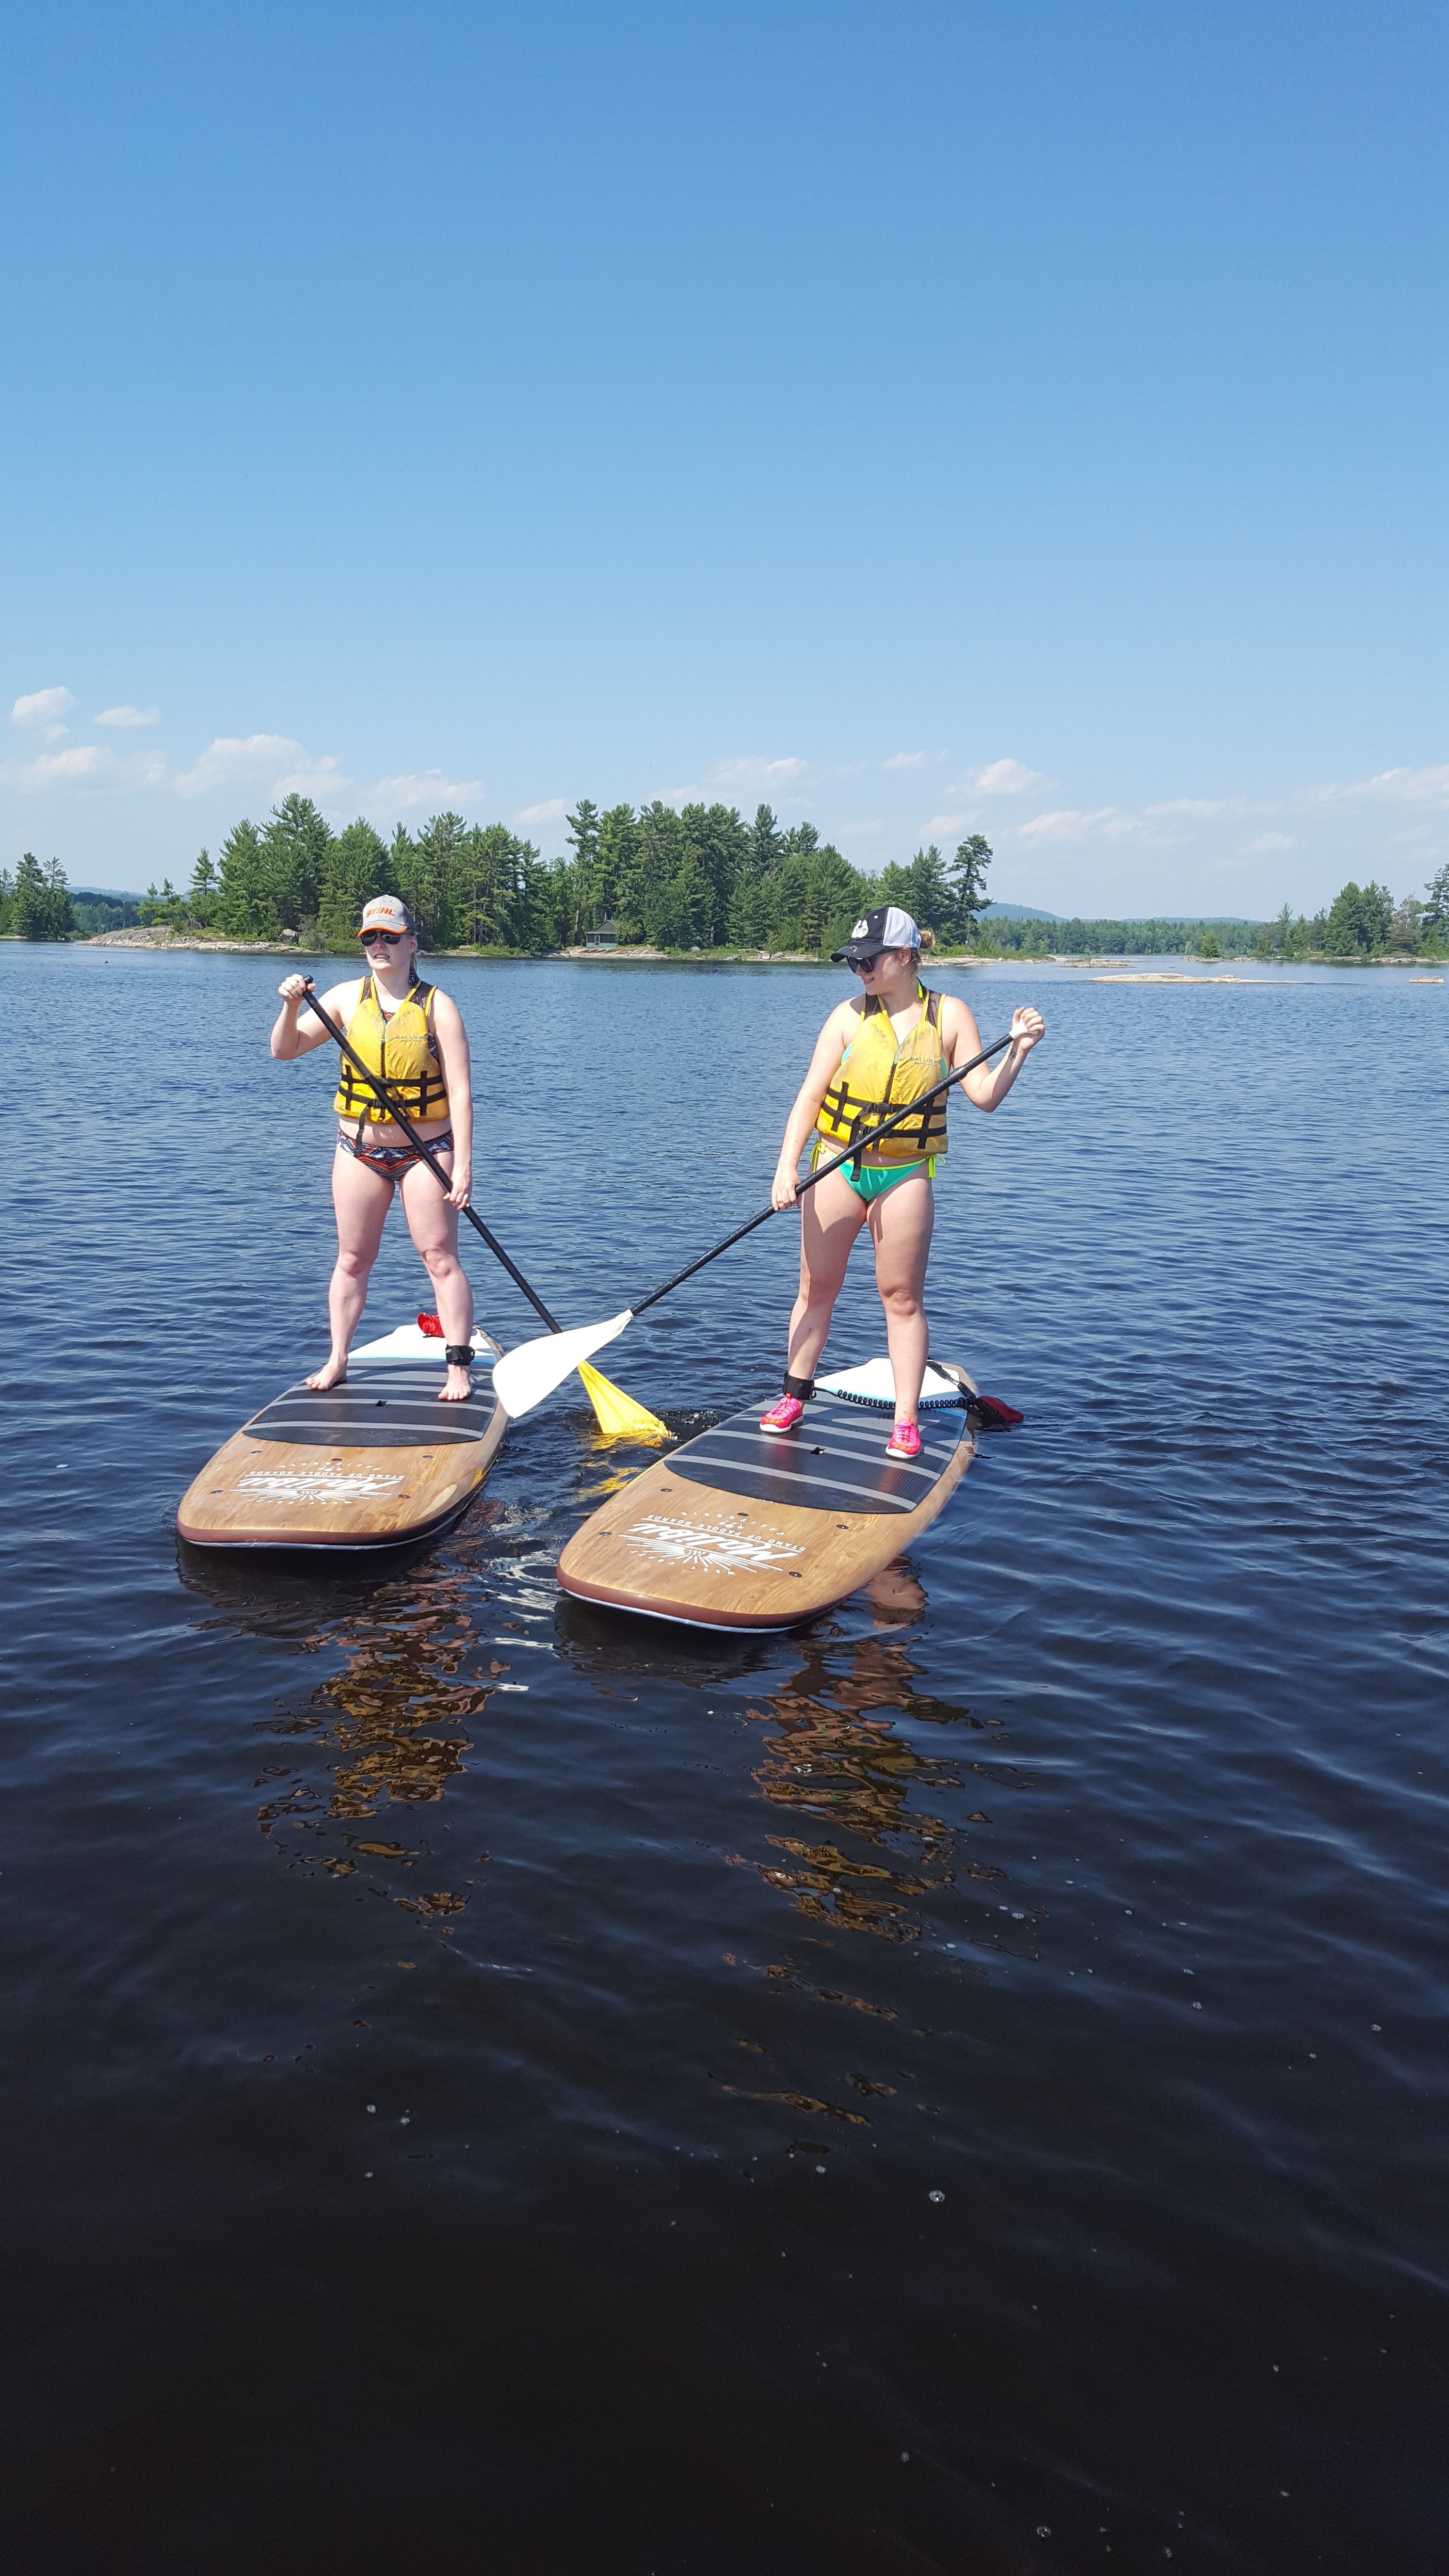 Image of 2 women on SUP boards on the Ottawa River